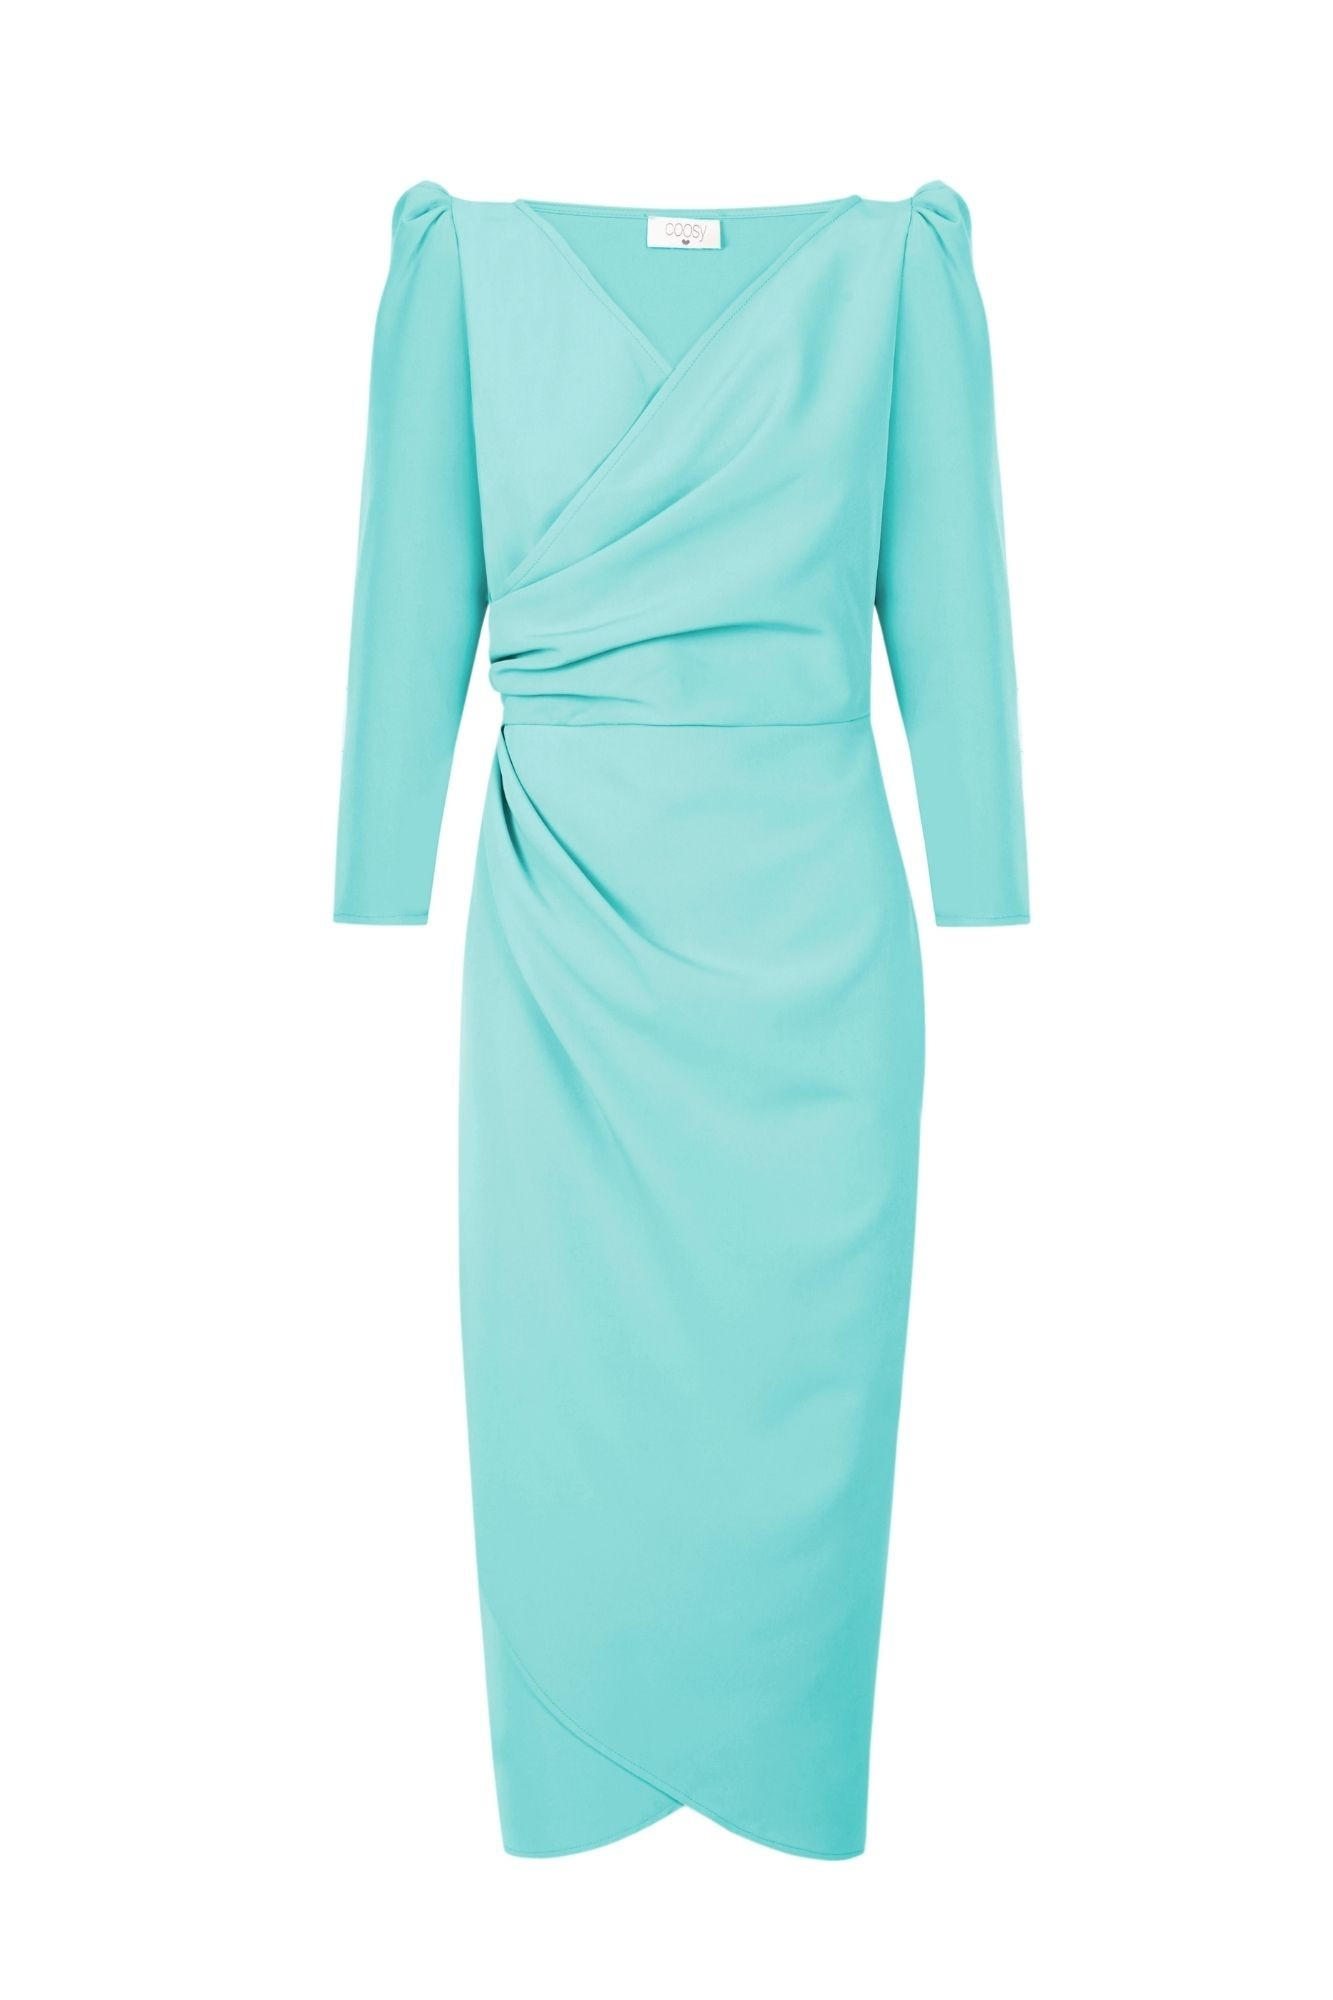 ALMA AQUAMARINE DRESS